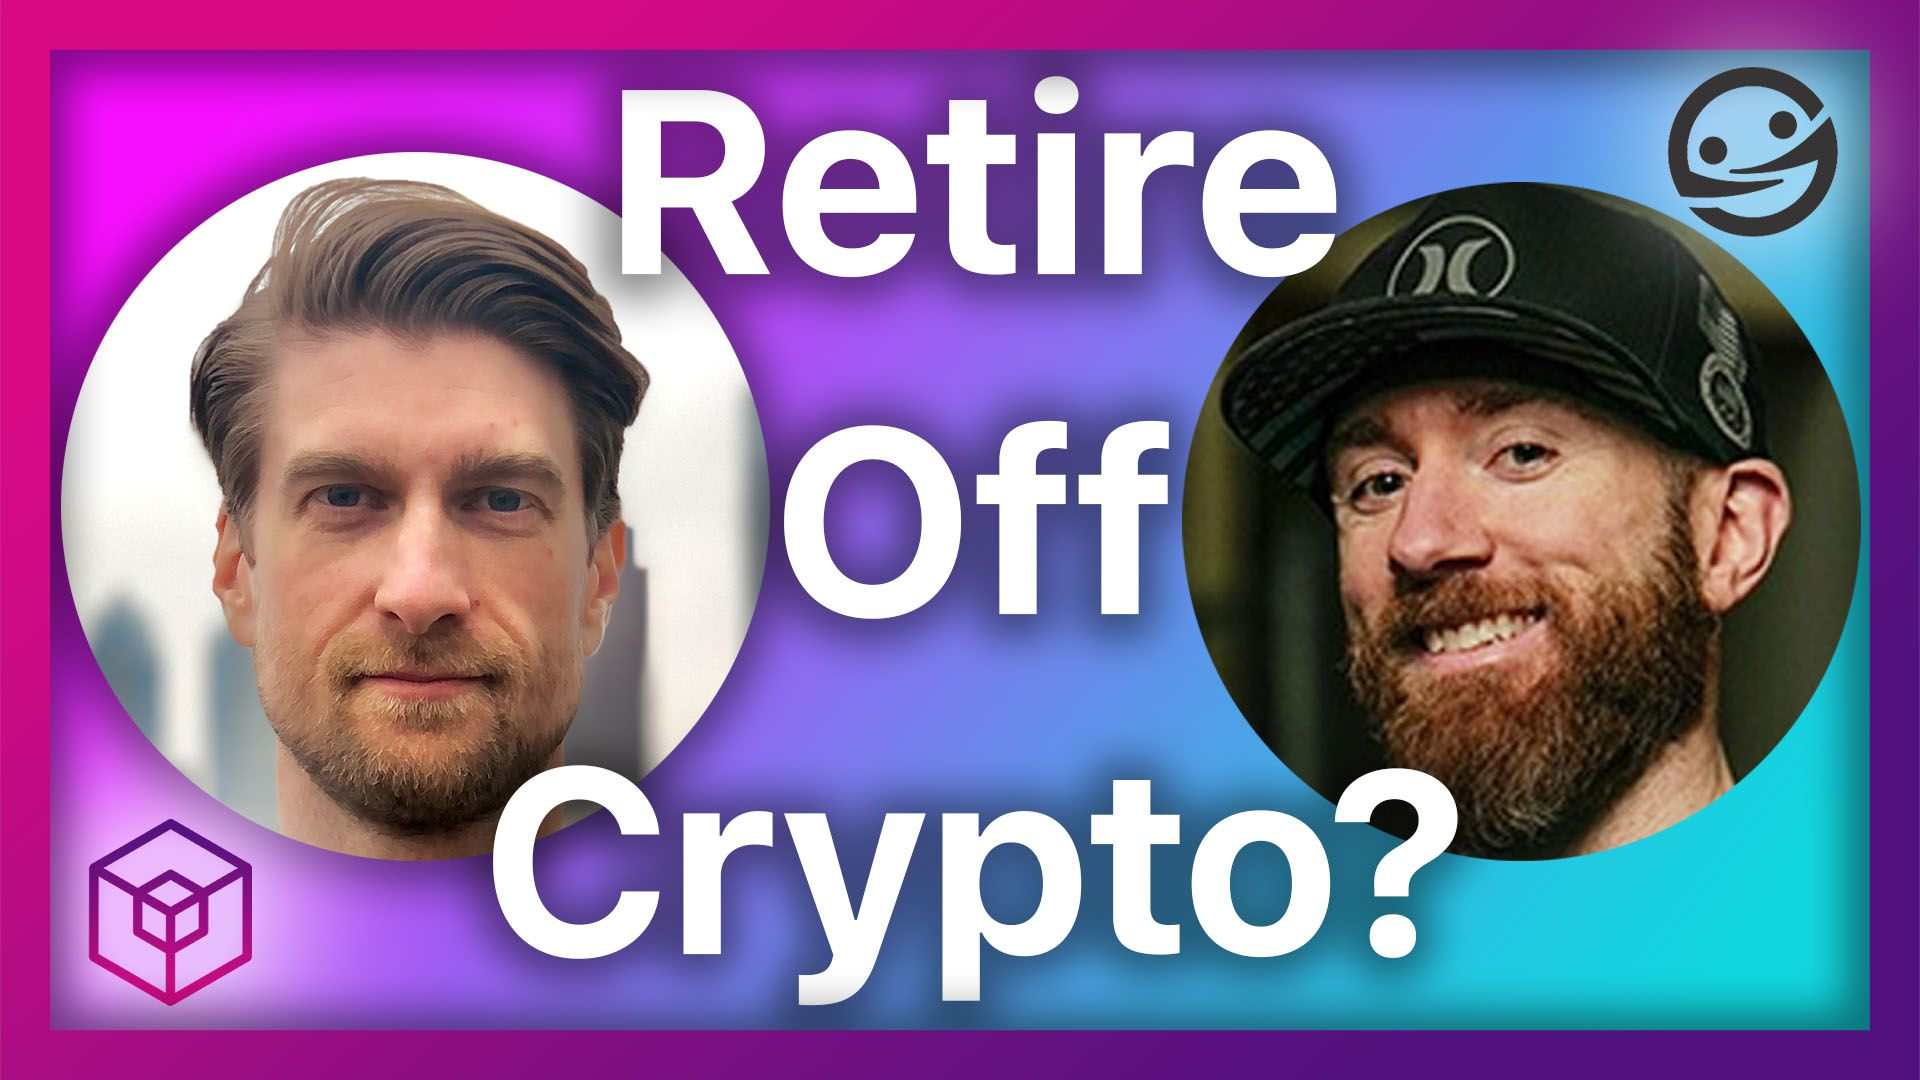 /retiring-on-your-crypto-bag-is-it-feasible-913r33wj feature image